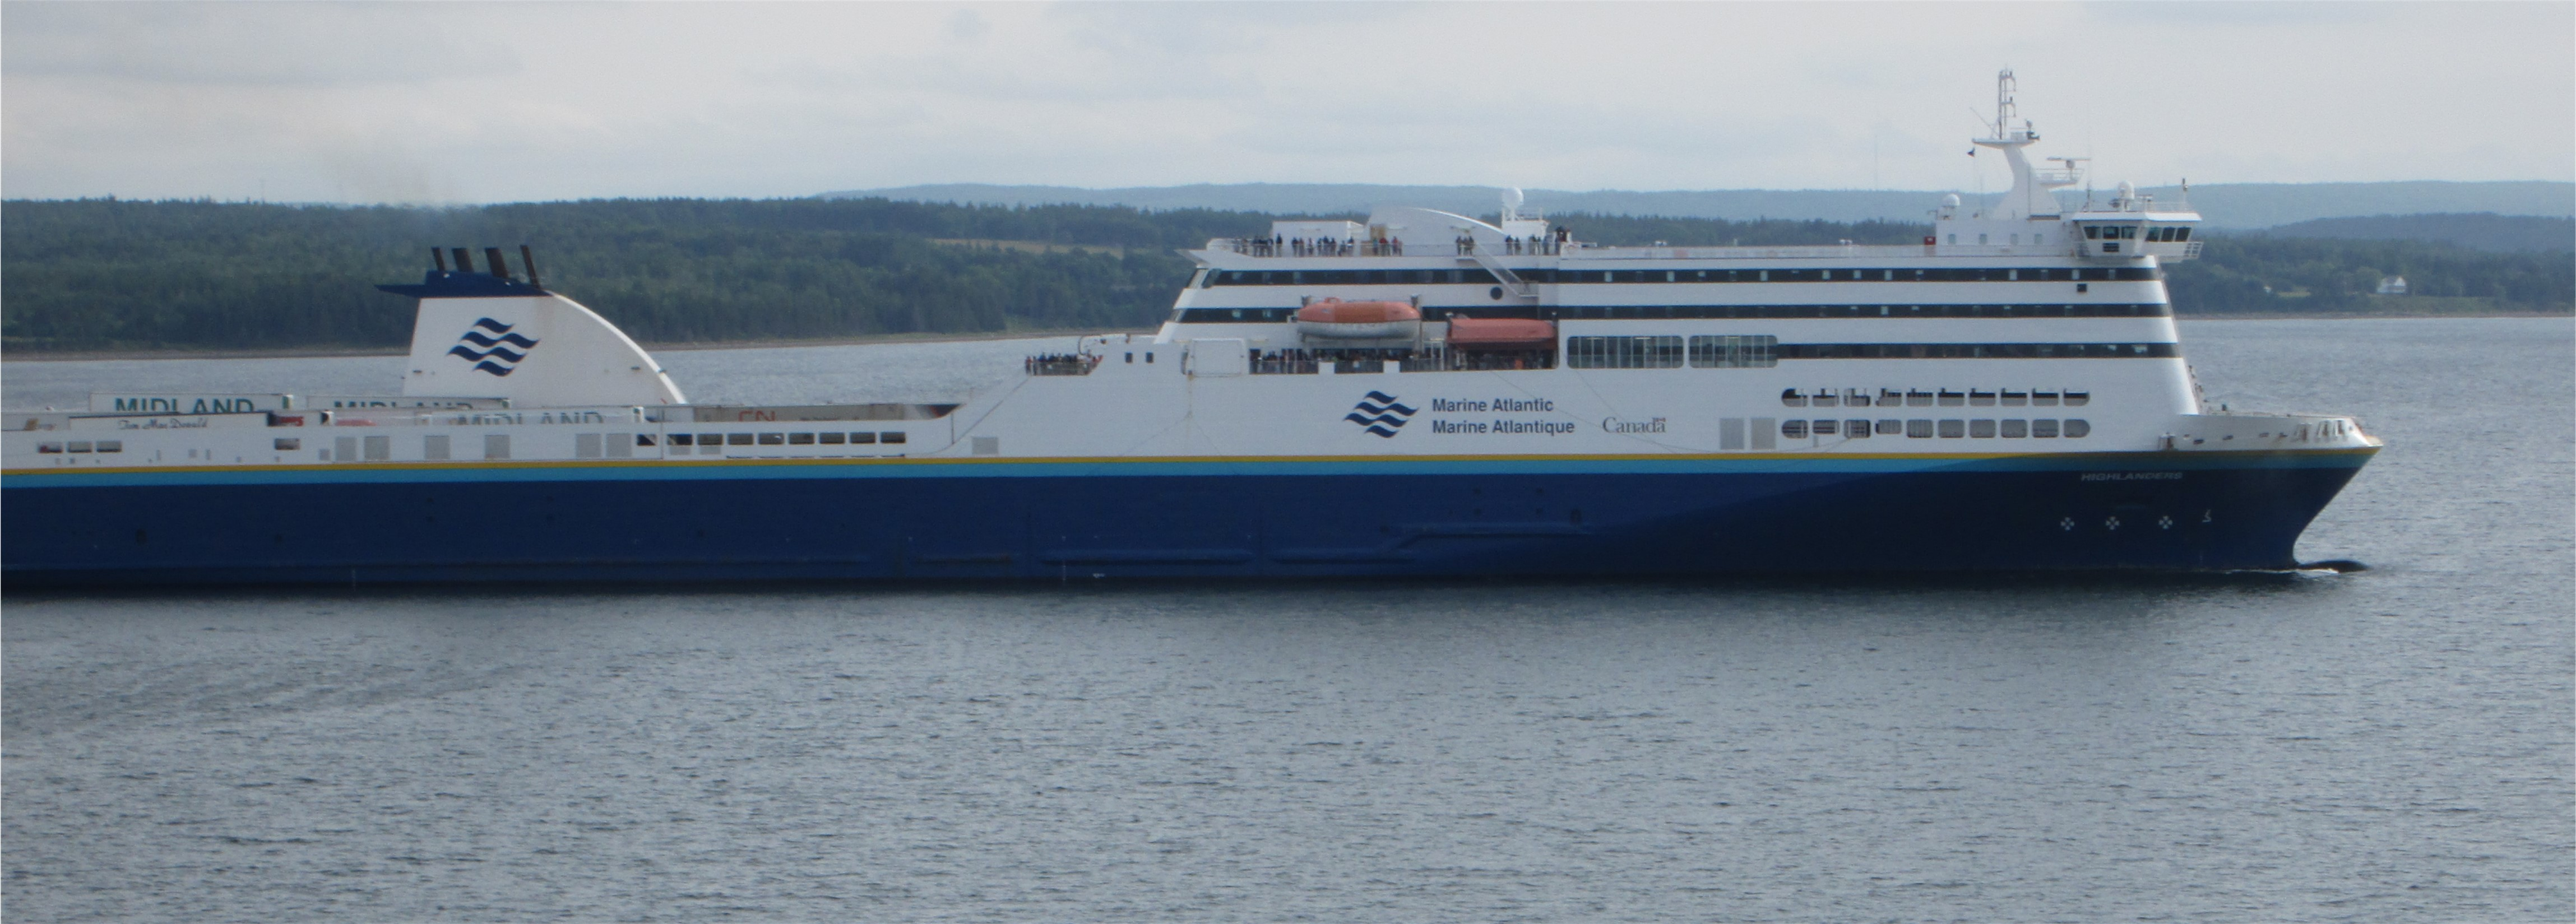 The Marine Atlantic Blue Puttees, a passenger and vehicle ferry, sails under an overcast sky